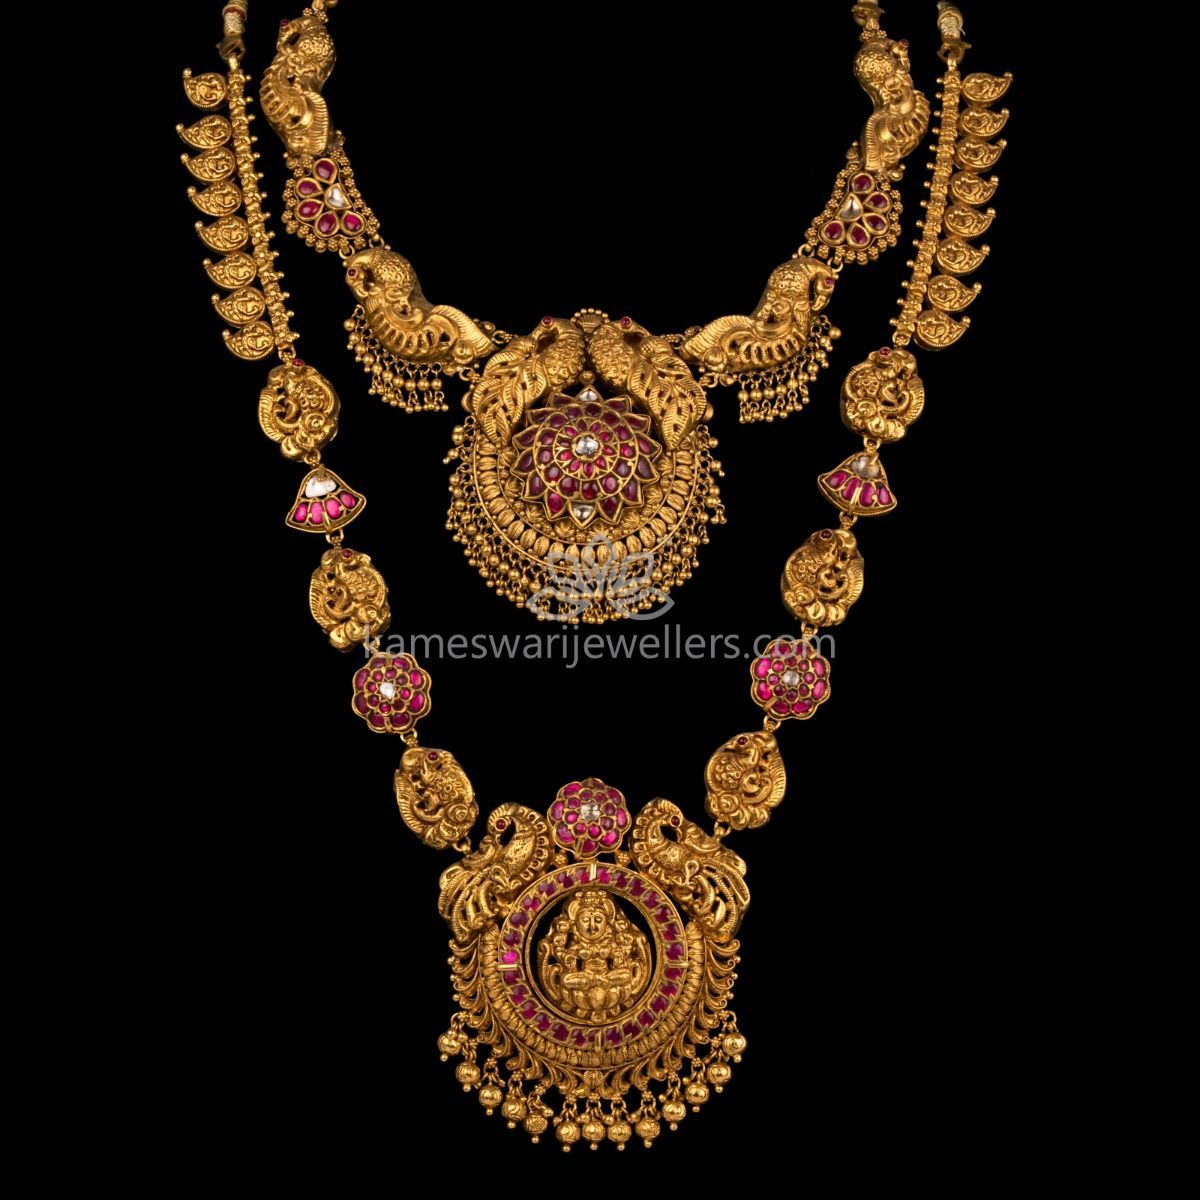 Buy Traditional Necklaces Online At Kameswari Jewellers In India Gold Necklace Indian Bridal Jewelry Antique Jewelry Indian Gold Necklace Designs